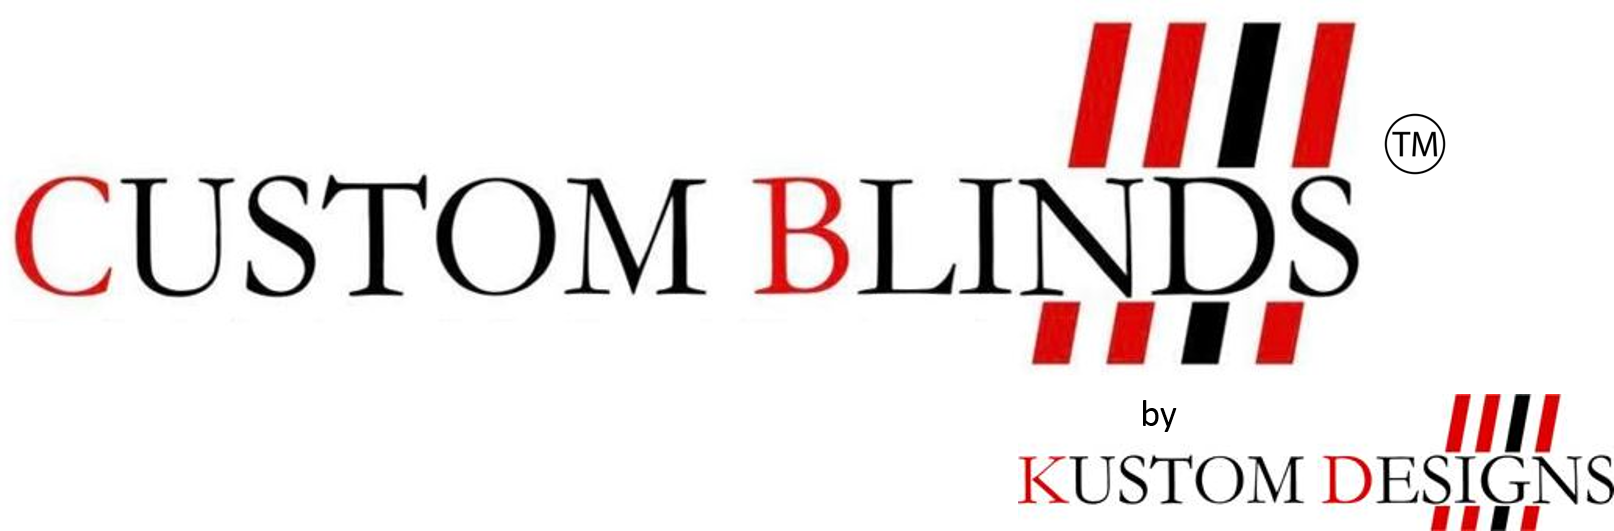 Custom Blinds™ Knysna